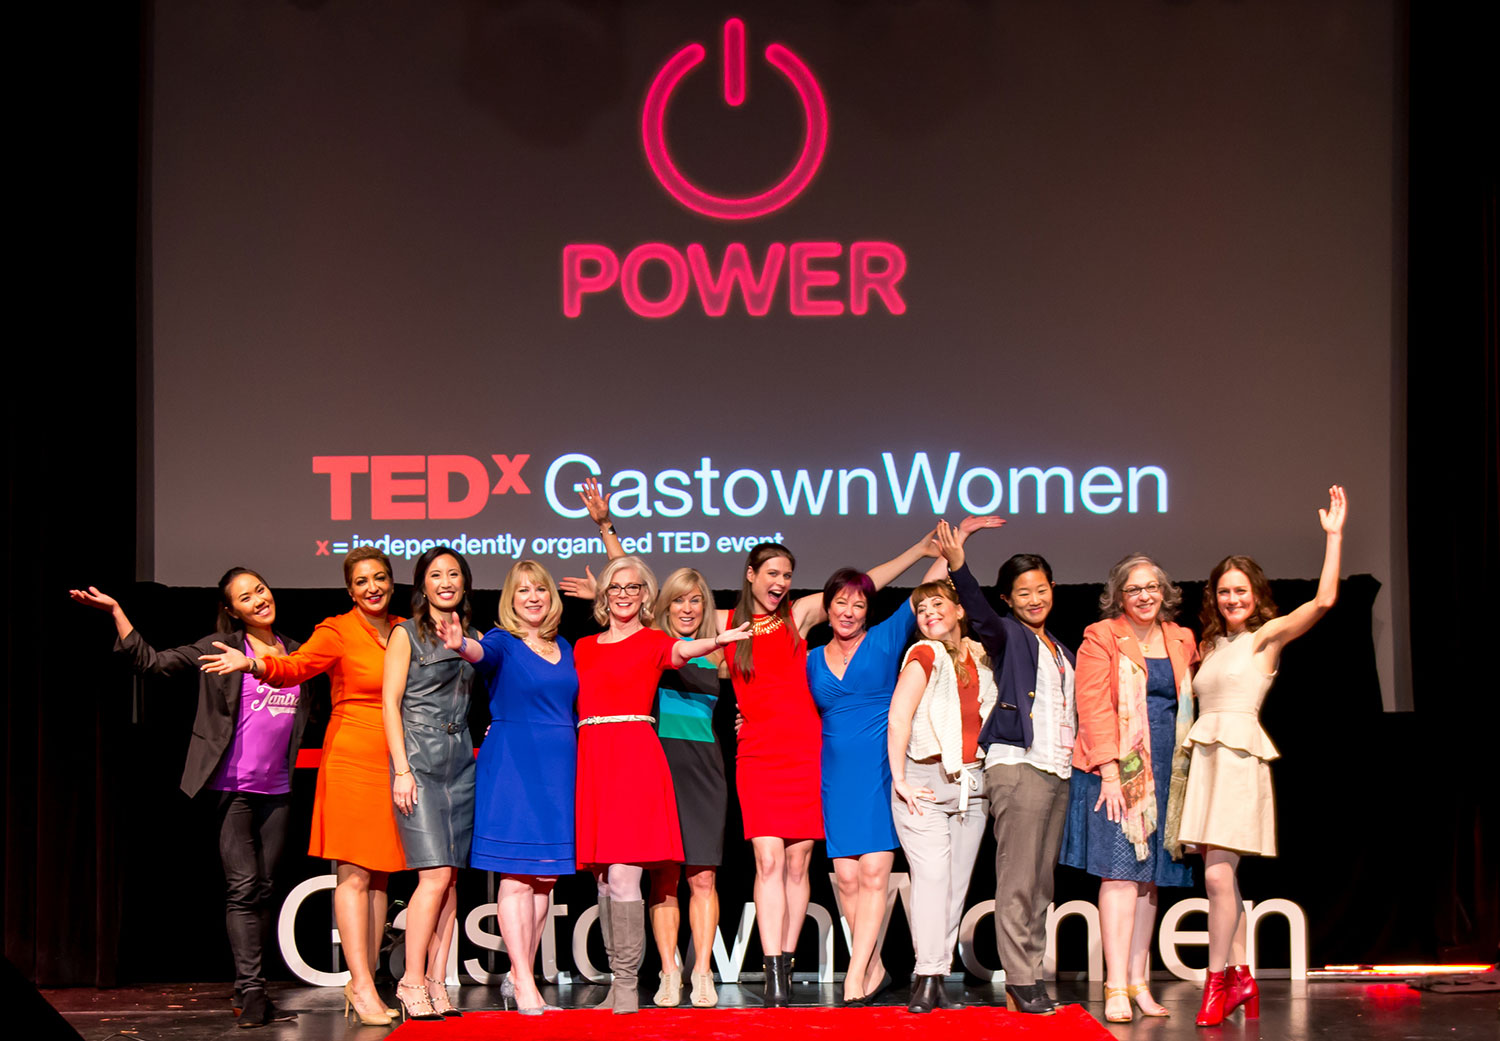 TEDxGastownWomen 2016 speakers and performers. (Suzanne Rushton Photography)